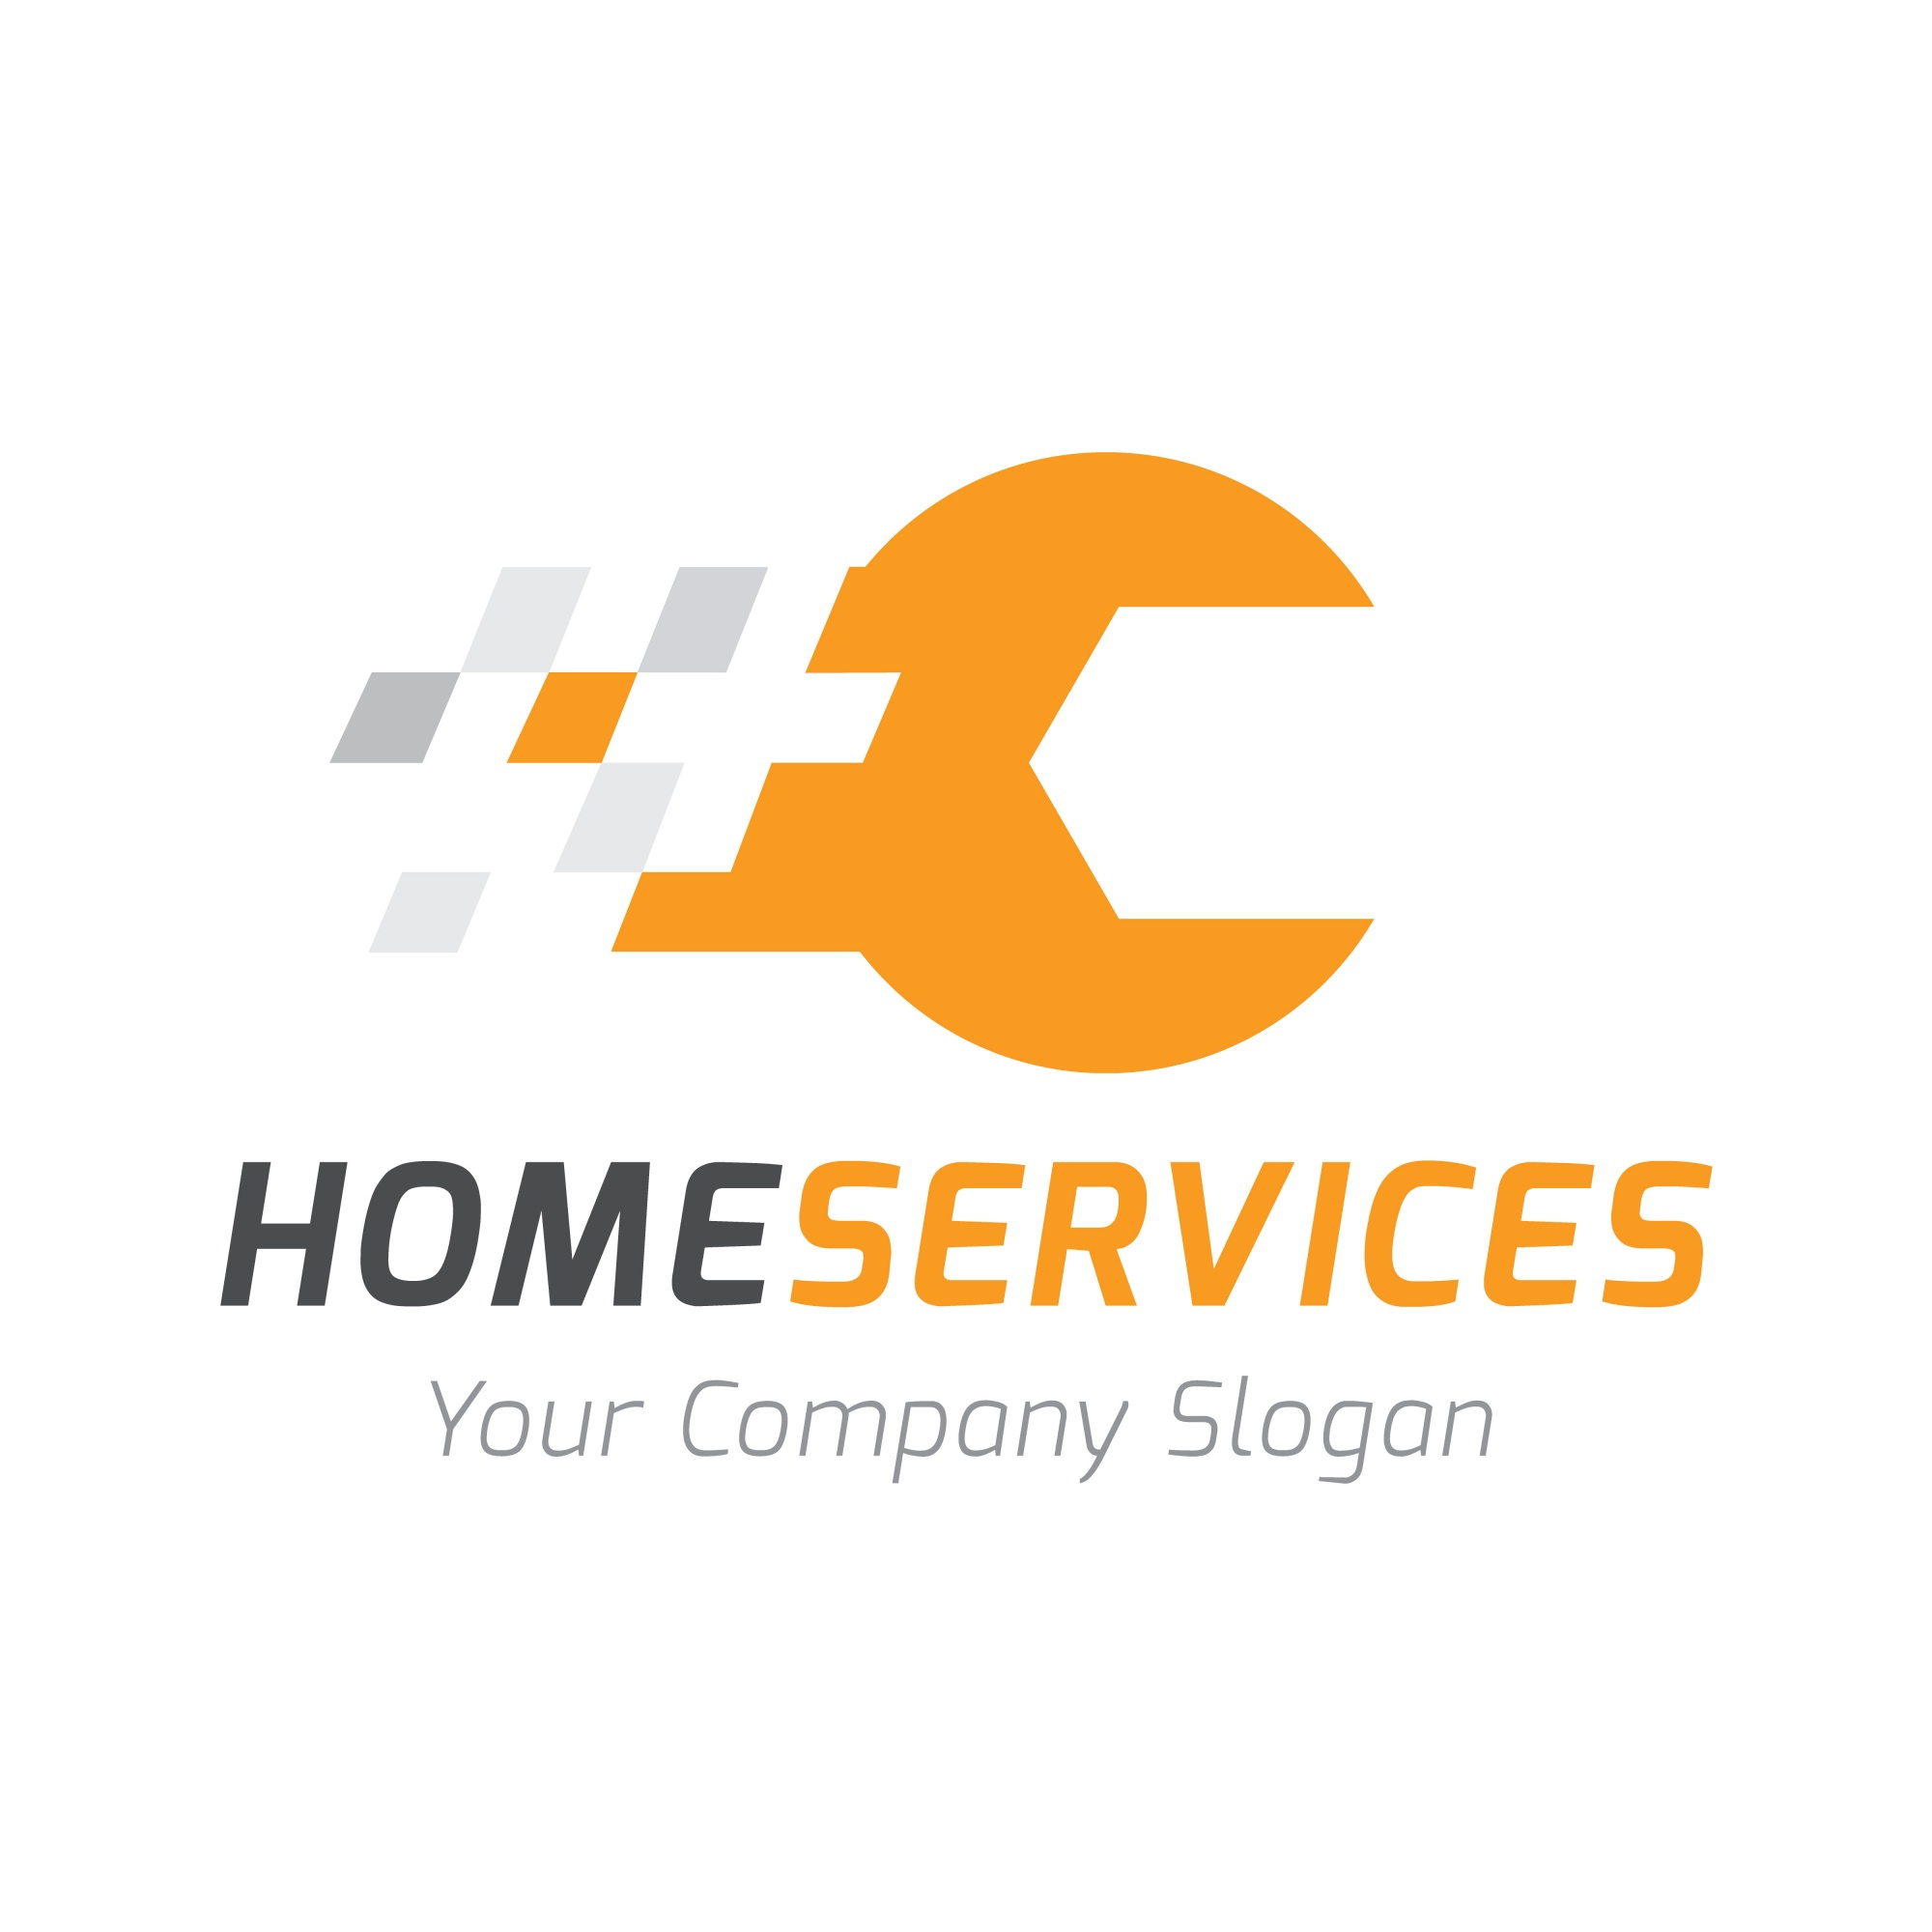 Home services logo, Home care logo sjabloon.